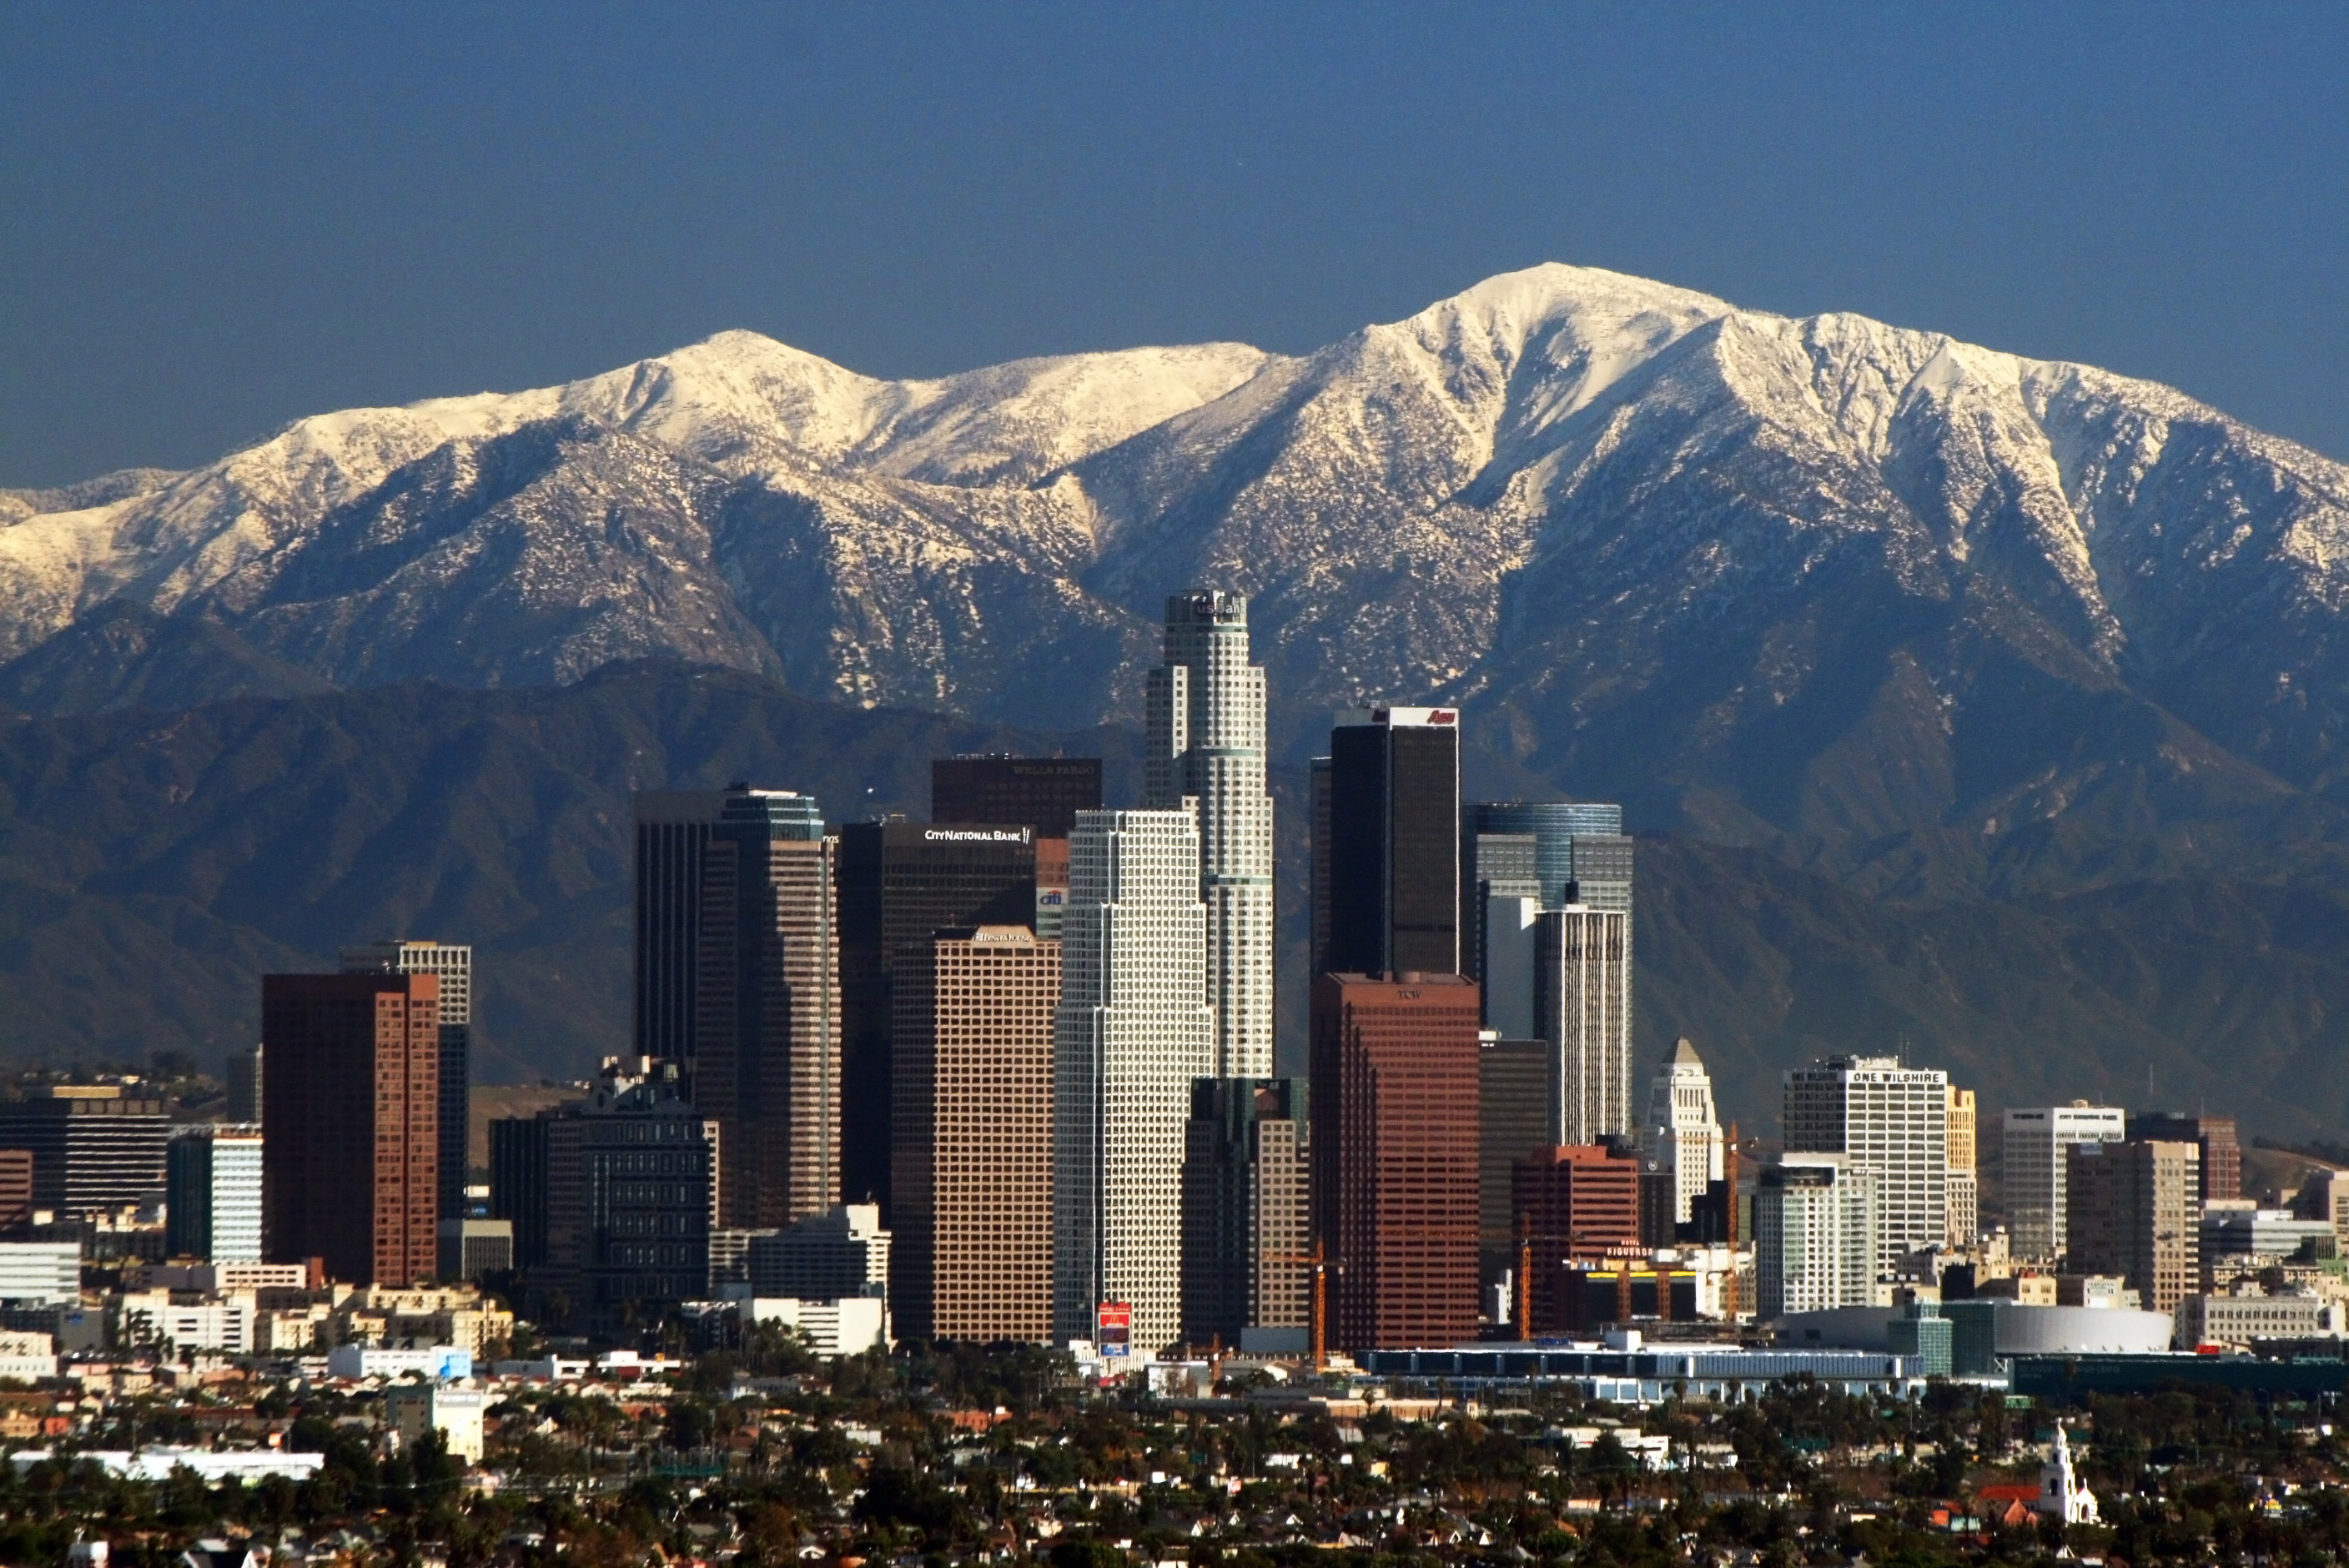 Los Angeles (EUA) lidera o ranking. / Wikimedia commons